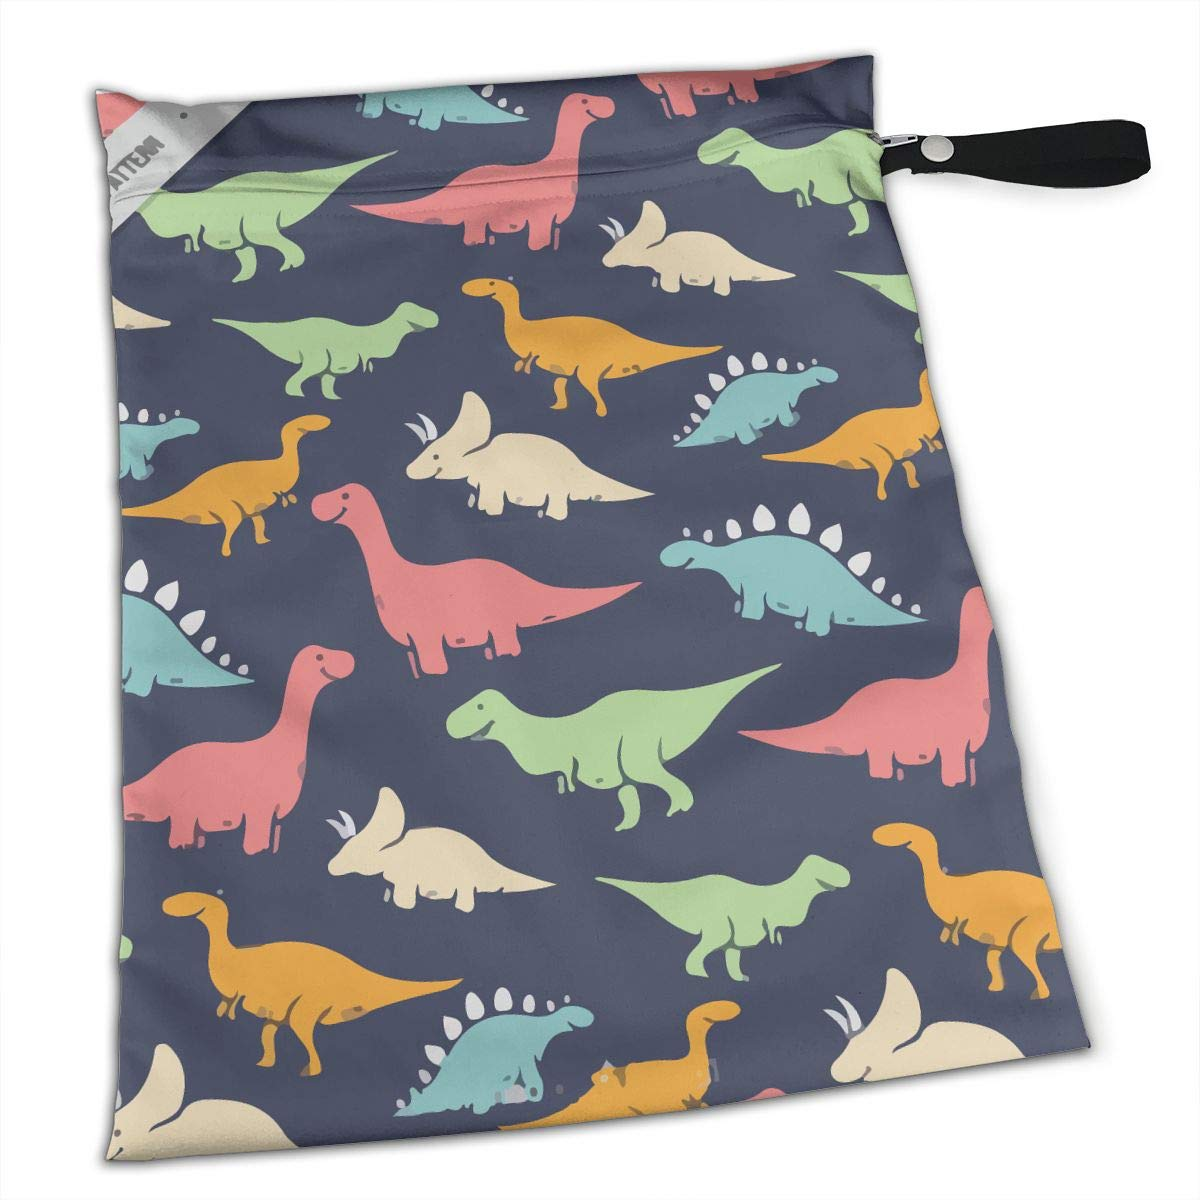 Pummbaby Colorful Dinosaur Workout Laundry Reusable Wet Dry Separation Travel Beach Gym Tote Bags Dirty Clothes and Wet Wipe Holder for Diaper Packing Bag Pads Hanging Set by Pummbaby